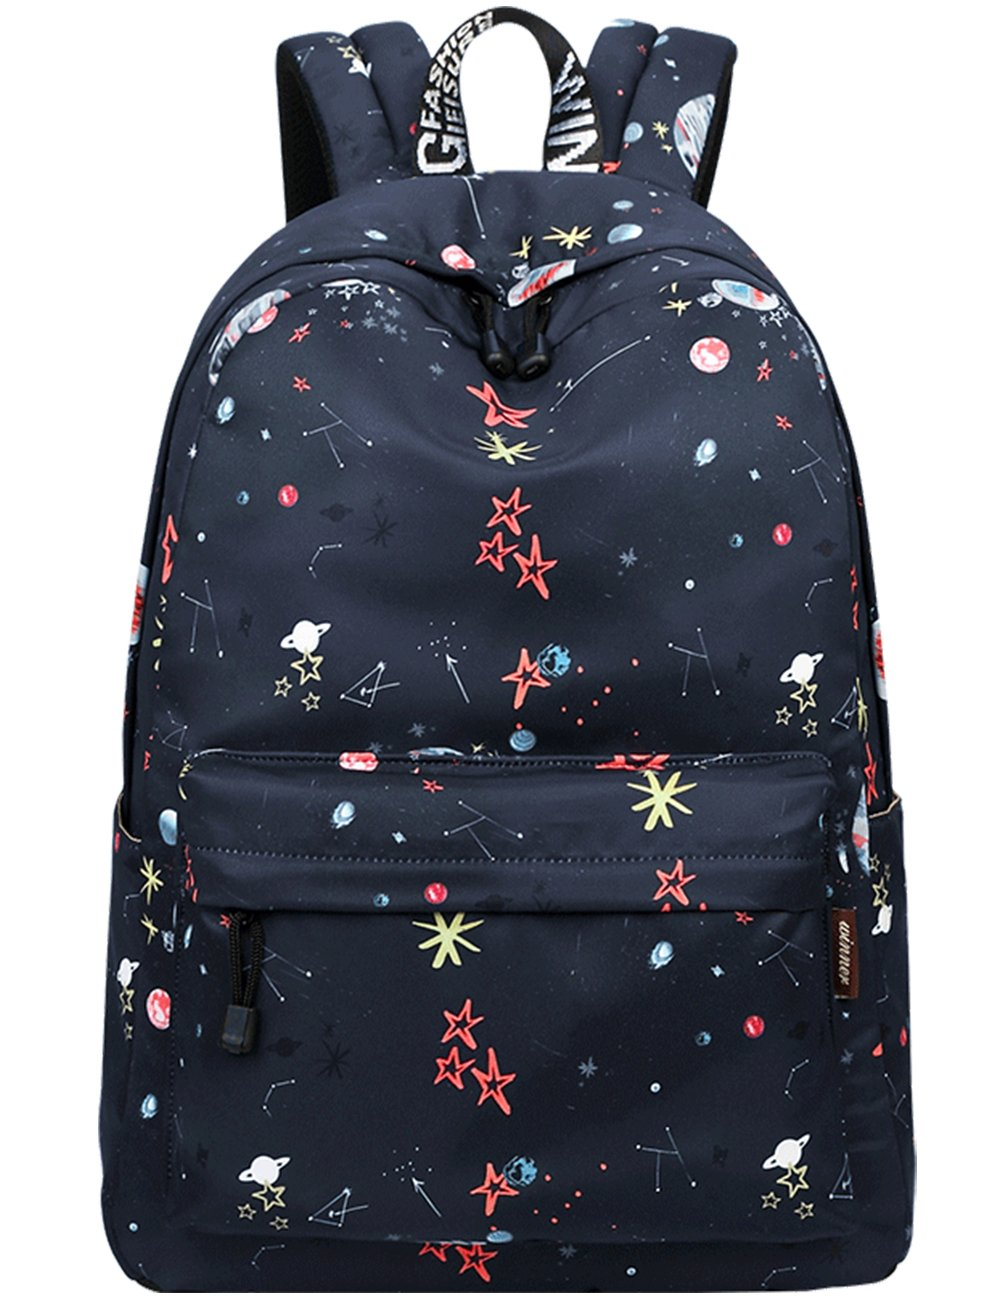 School Bookbags for Girls, Cute Galaxy Stars Planets Backpack College Bags Women Daypack Travel Bag by Mygreen (Black)